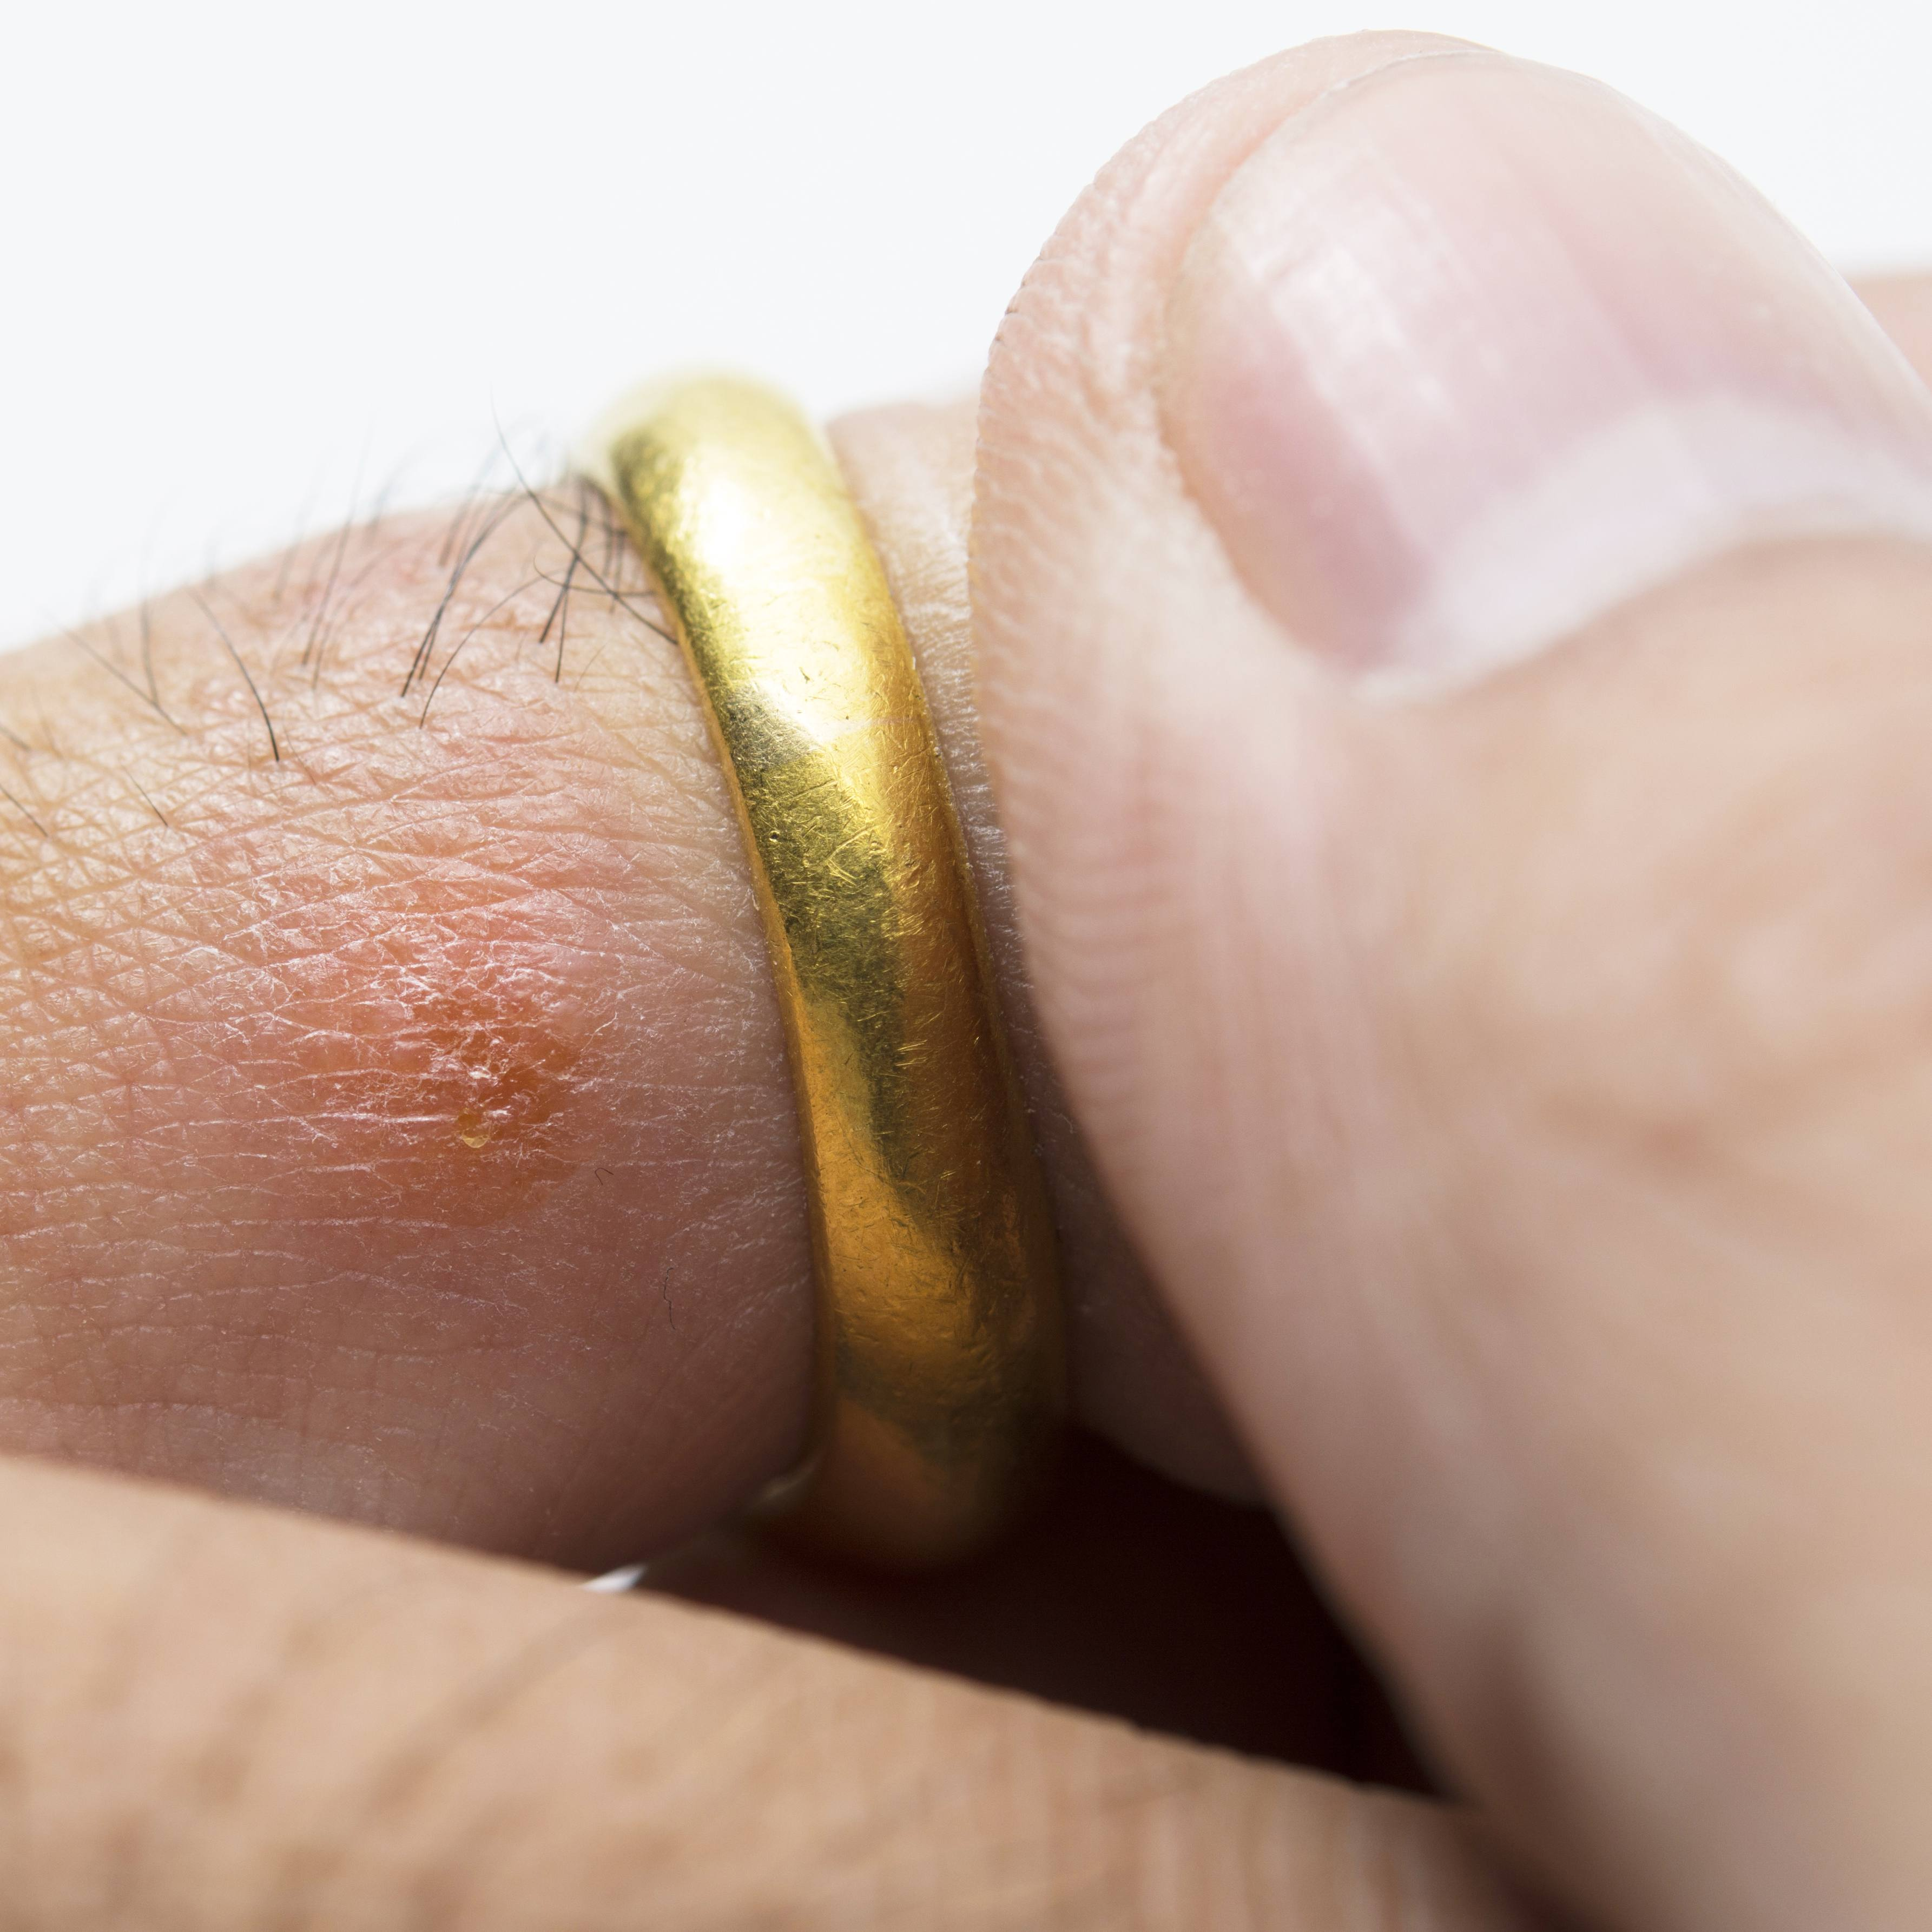 close up of a ring on a person's finger, showing a red skin rash